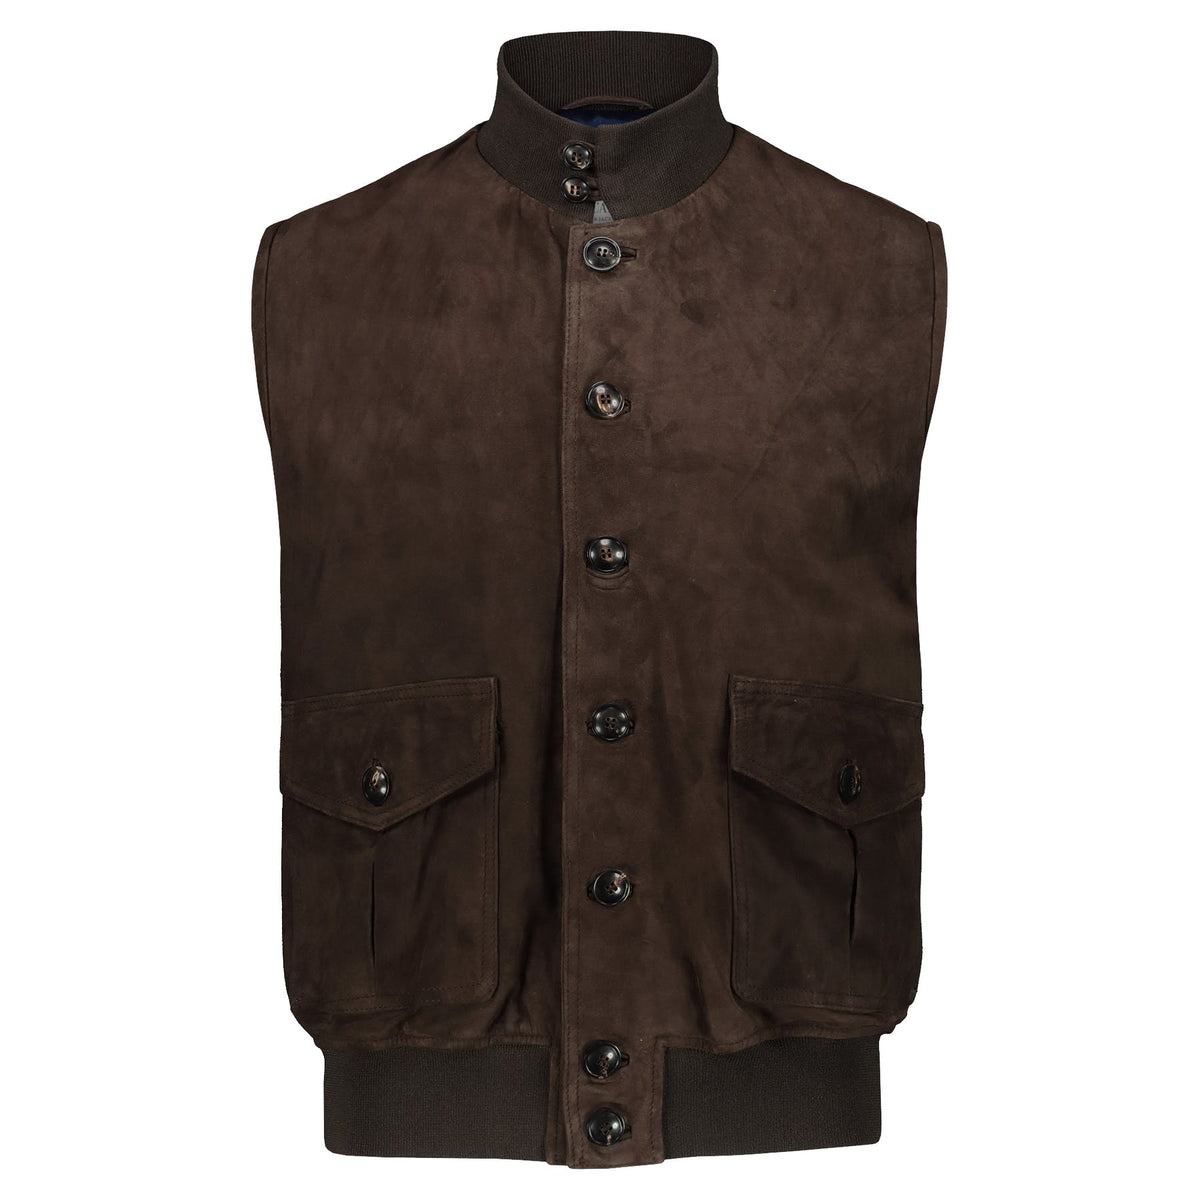 Atacama Cary Suede Brown Sleeveless Vest